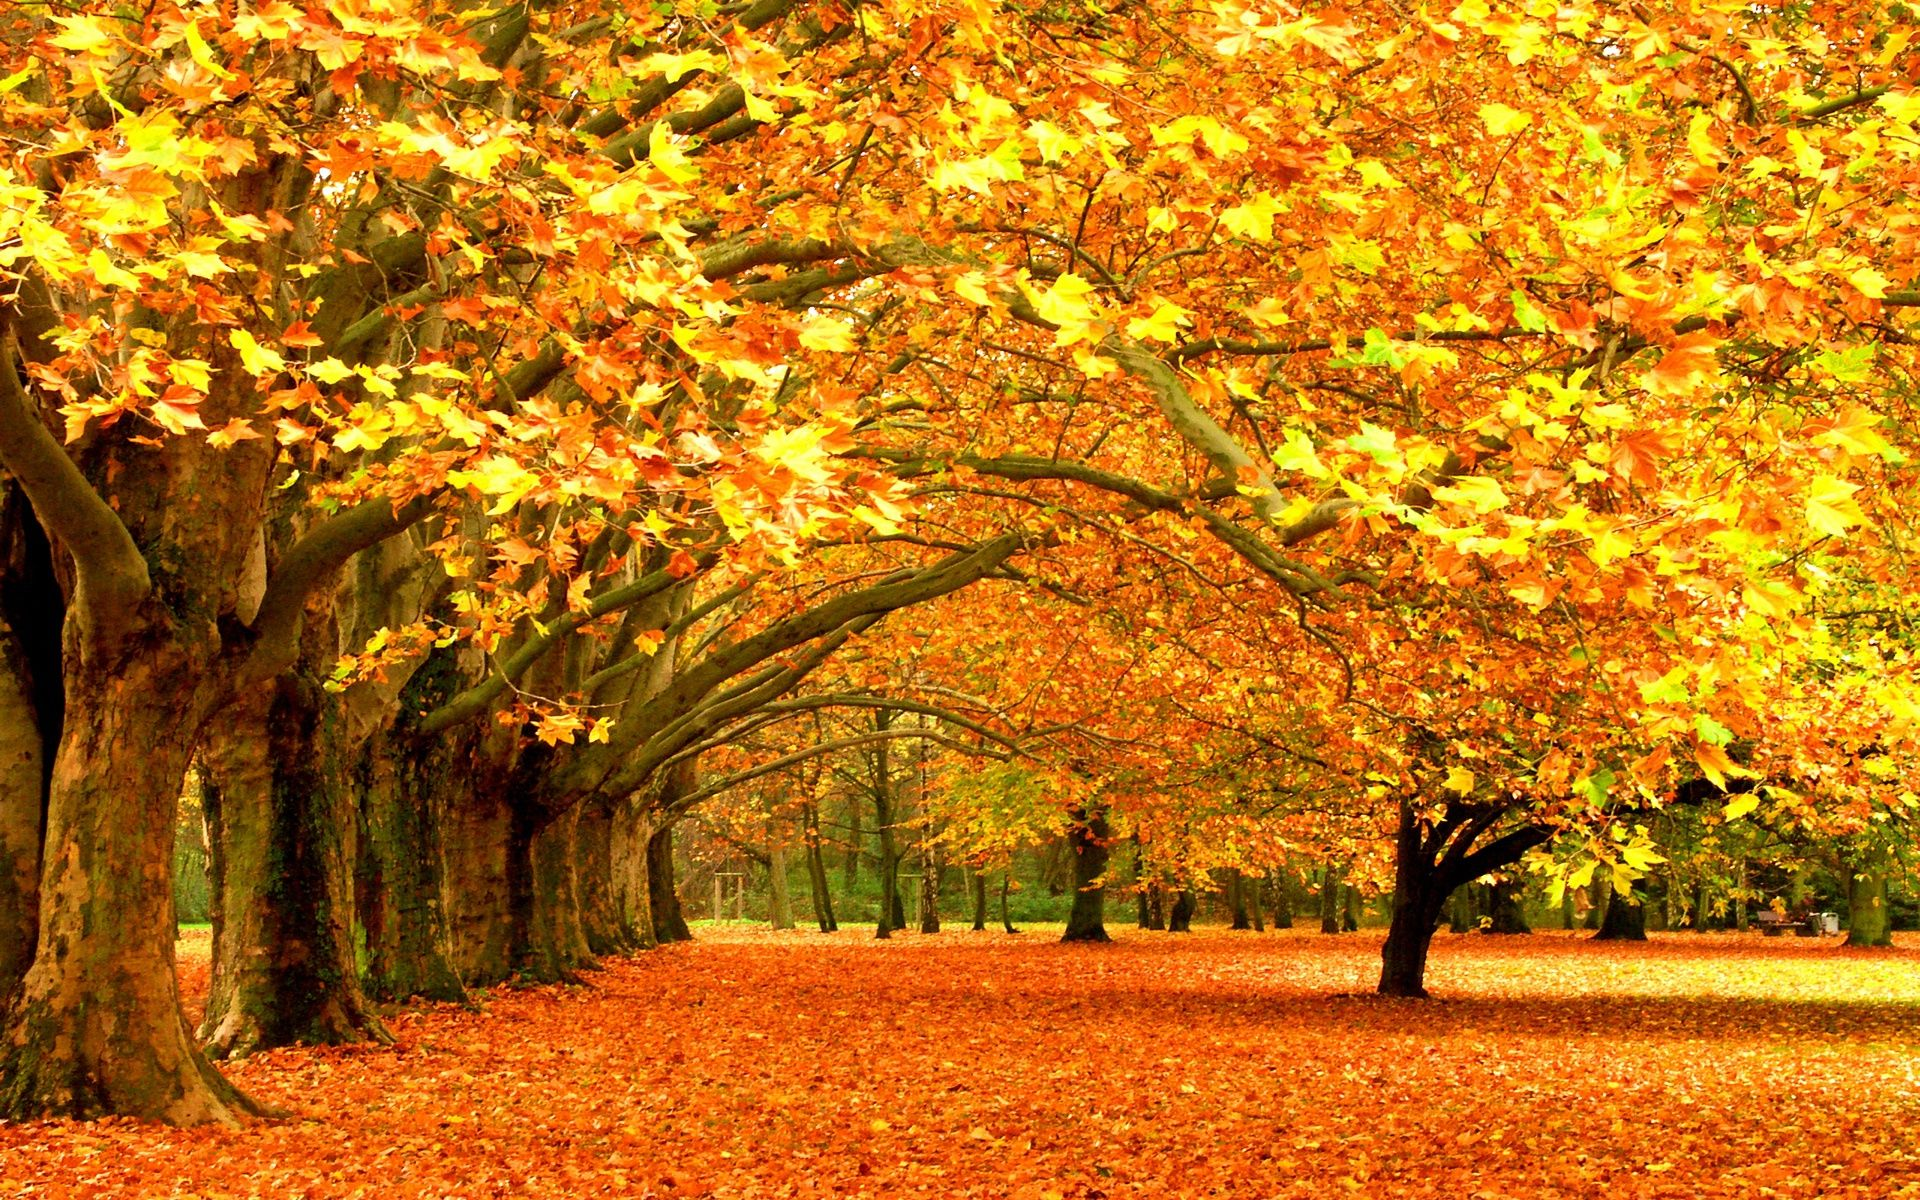 Autumn Wallpaper Widescreen Facebook Cover